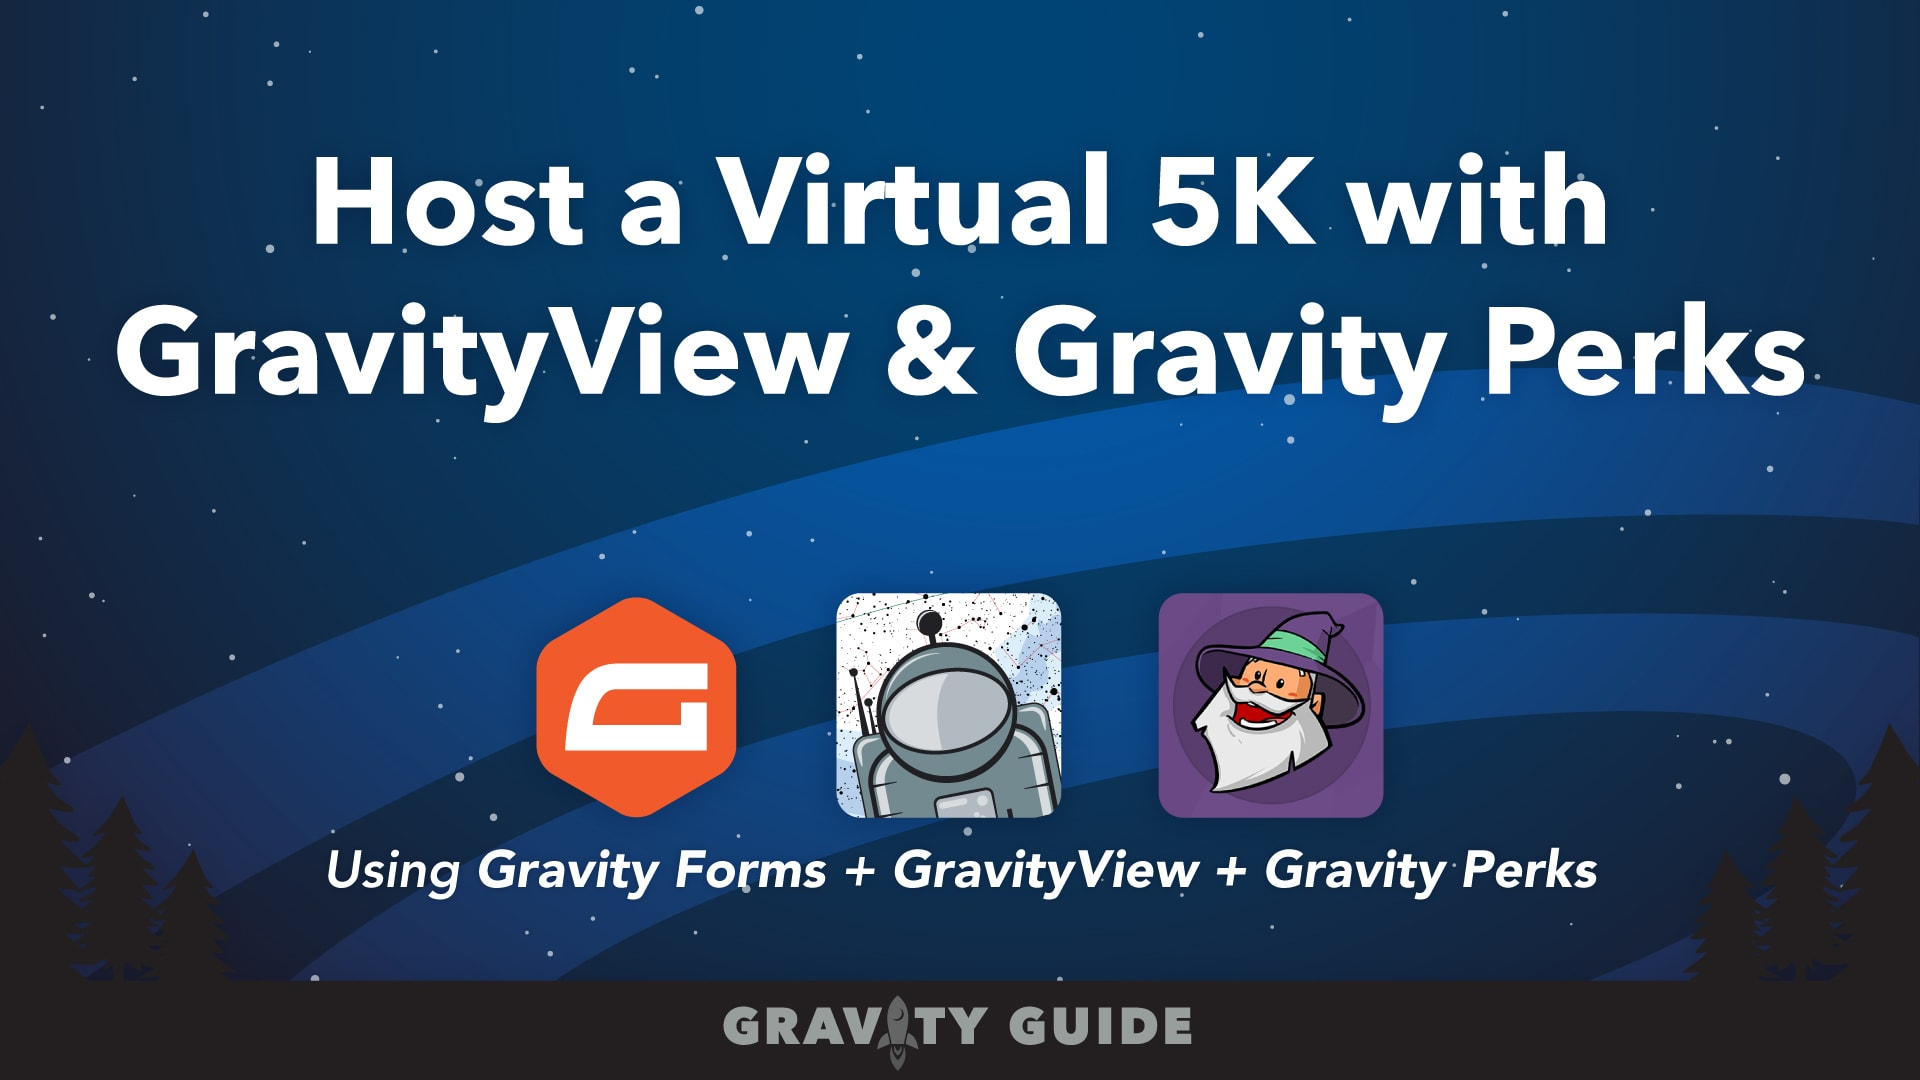 Host a Virtual 5K with Gravity Forms